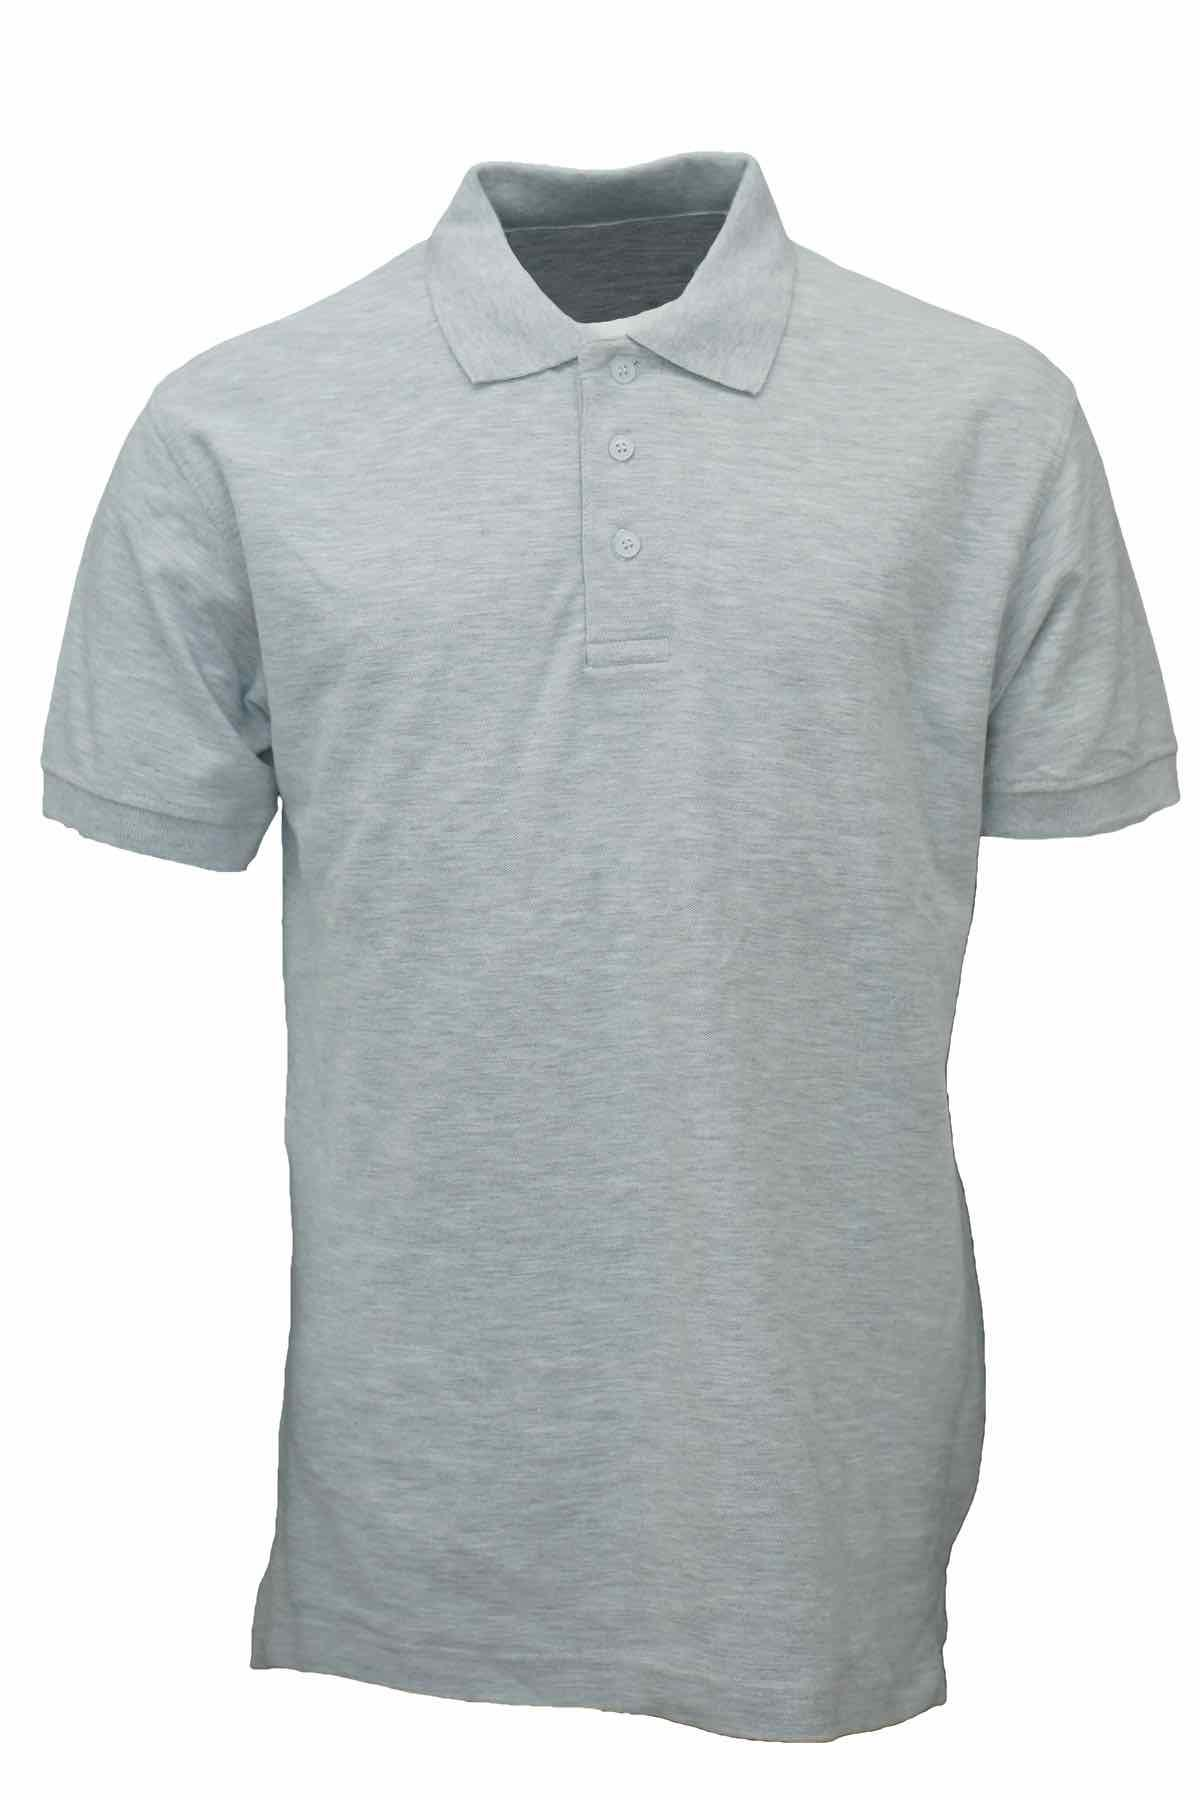 Basic Foursquare Cotton Honeycomb Polo - Ash Grey